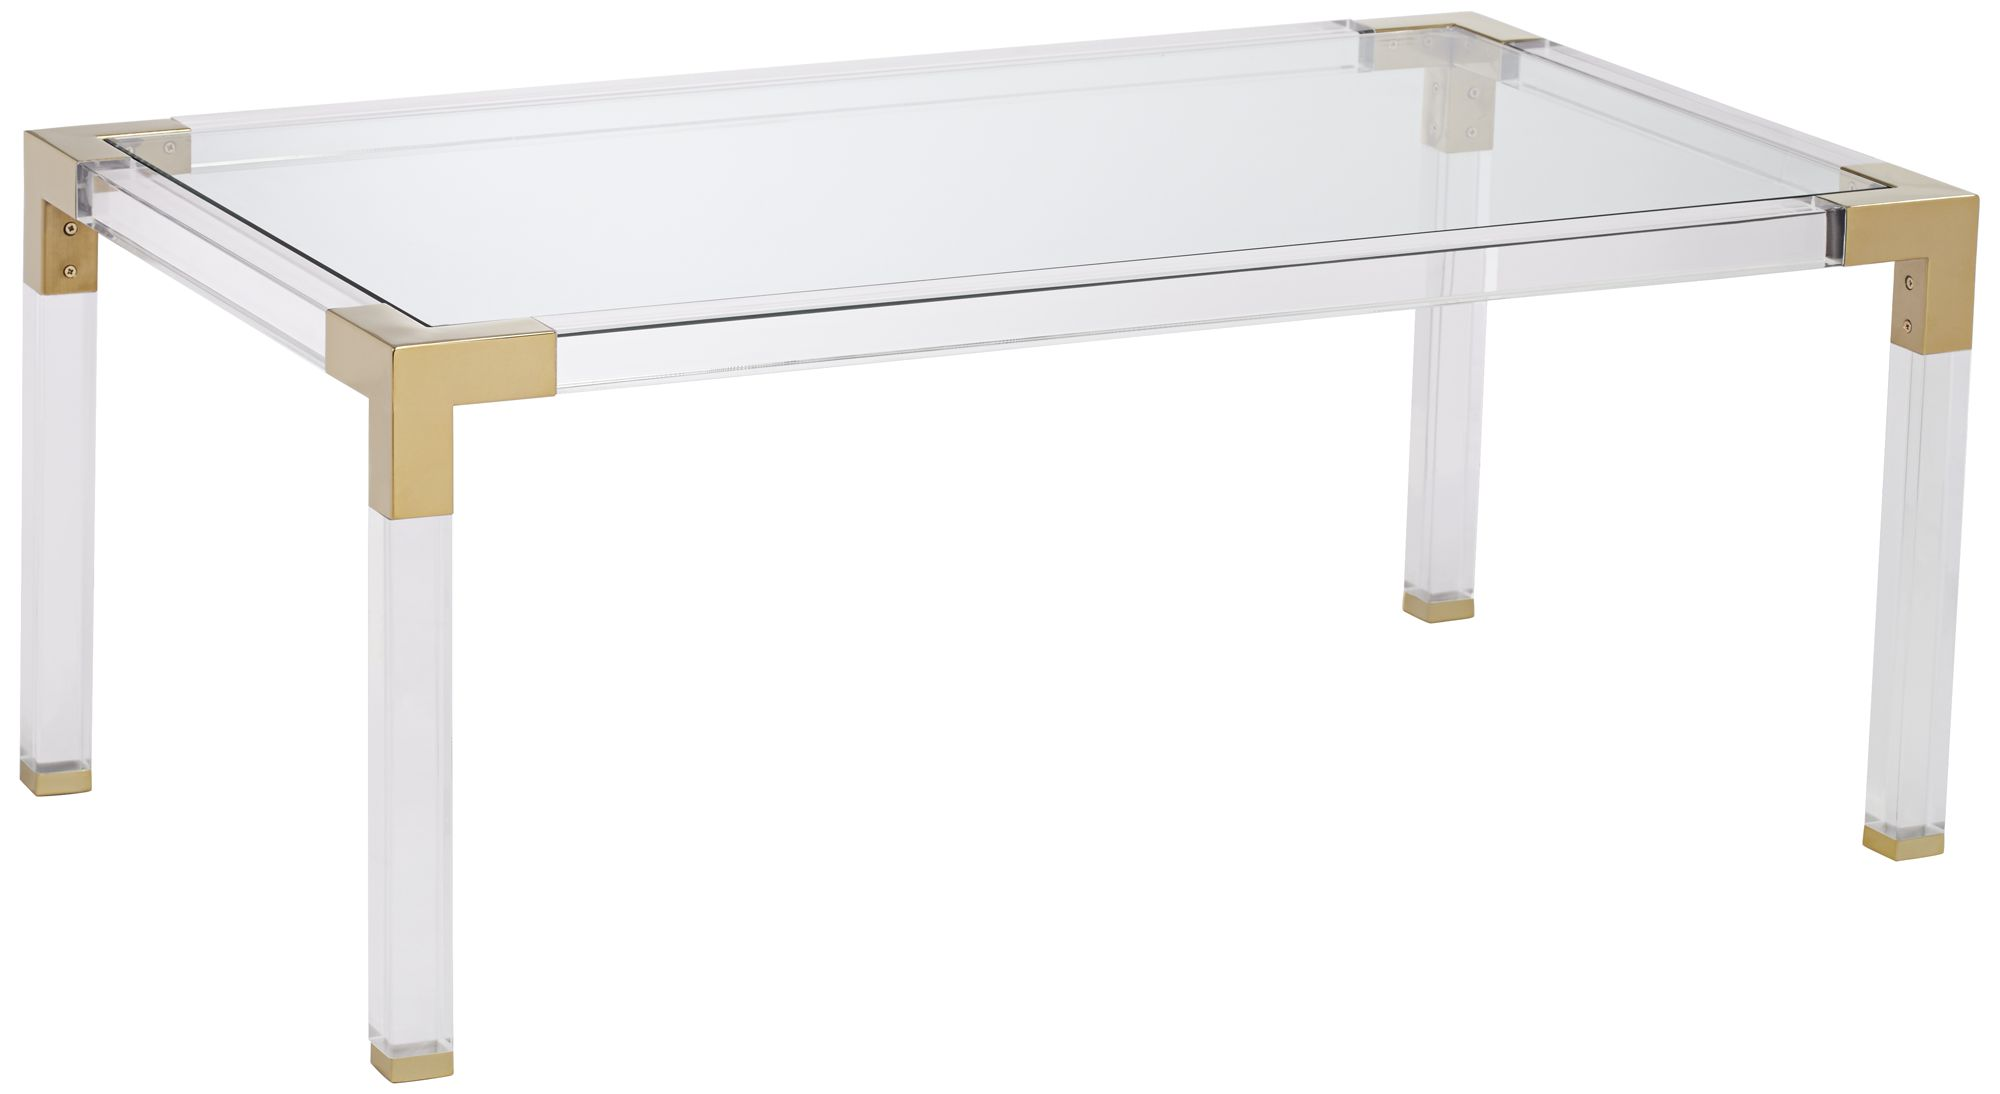 Charmant Hanna Rectangle Clear Acrylic Coffee Table With Gold Corners